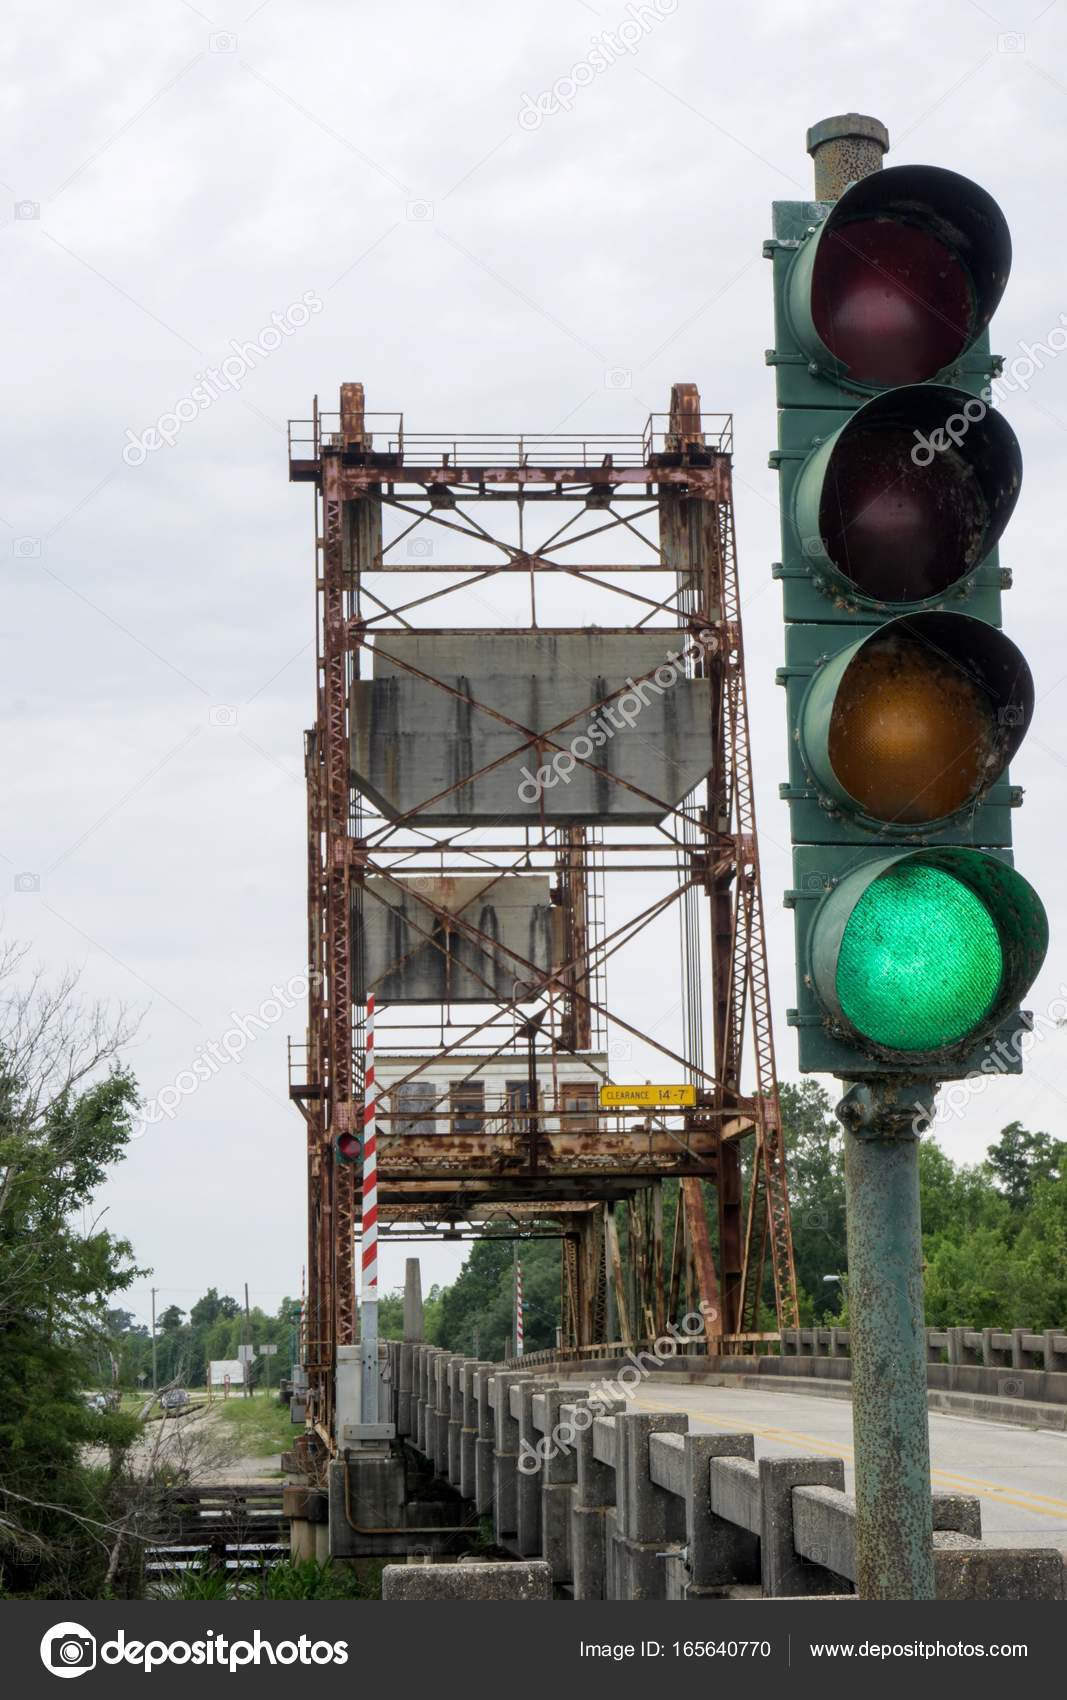 Mississippi draw bridge traffic light stock photo jimkimmons mississippi draw bridge traffic light stock photo arubaitofo Choice Image